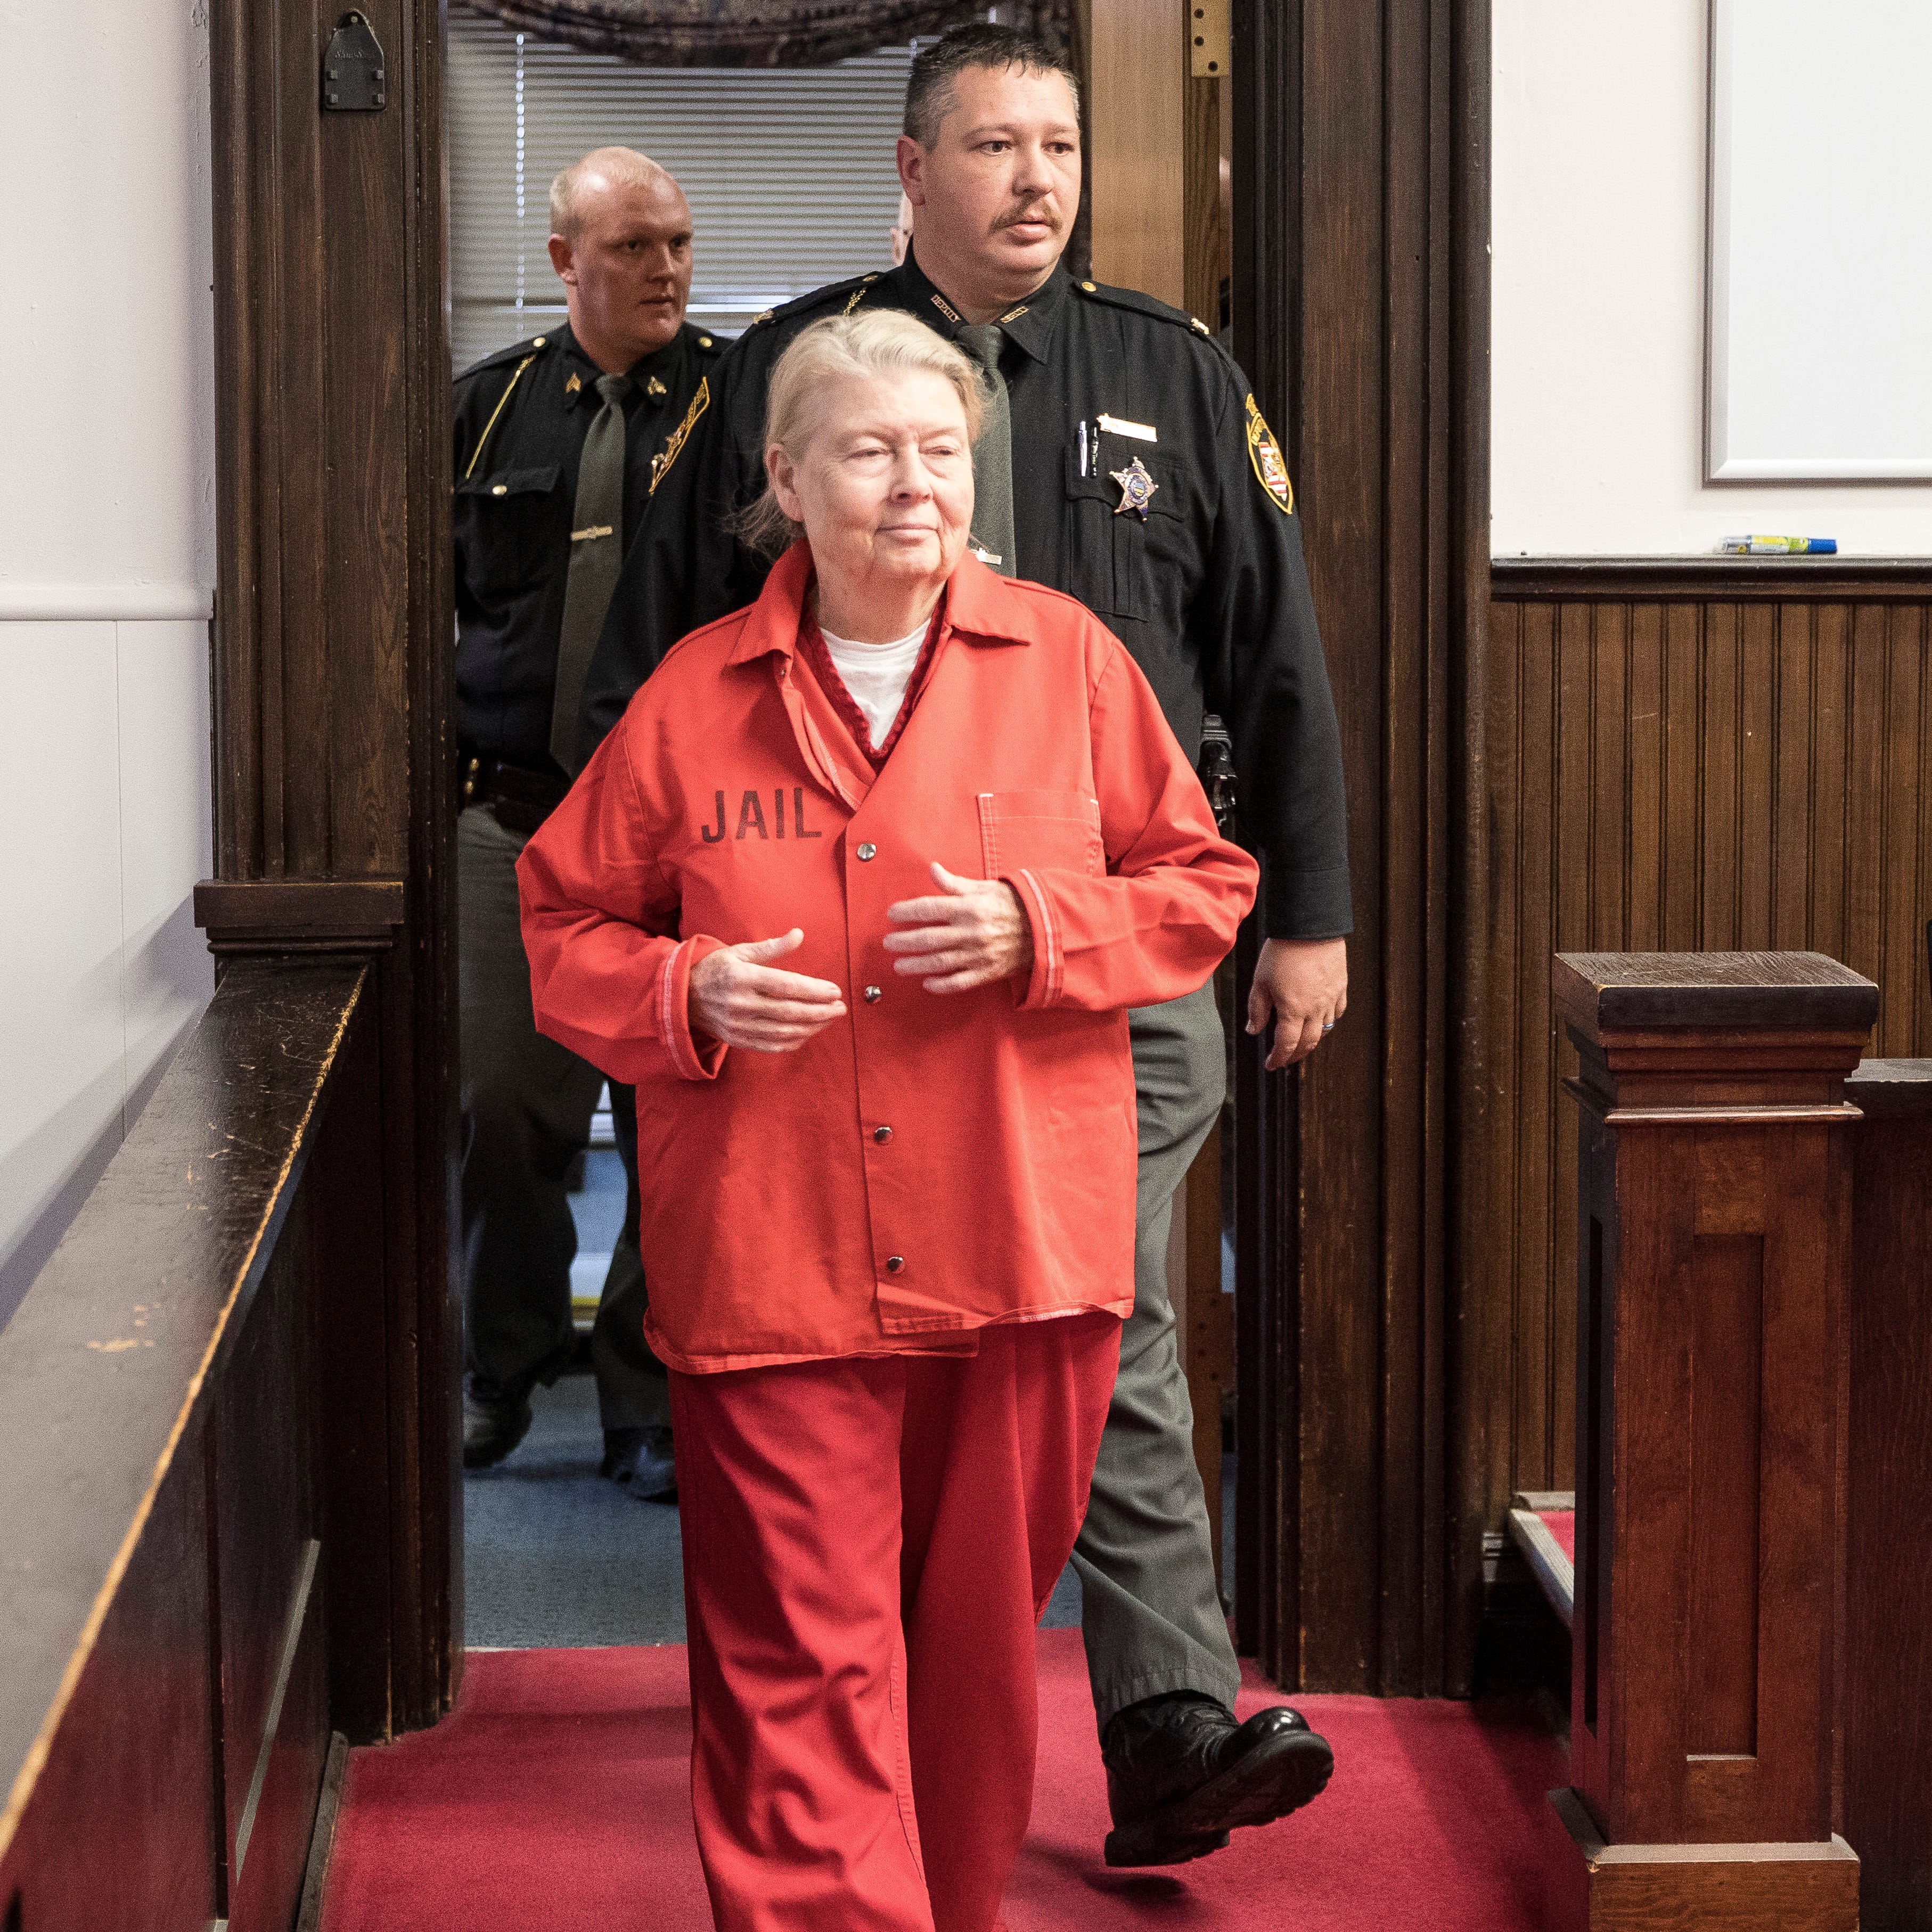 Rhoden family massacre: Prosecutor alleges Fredericka Wagner plotted revenge